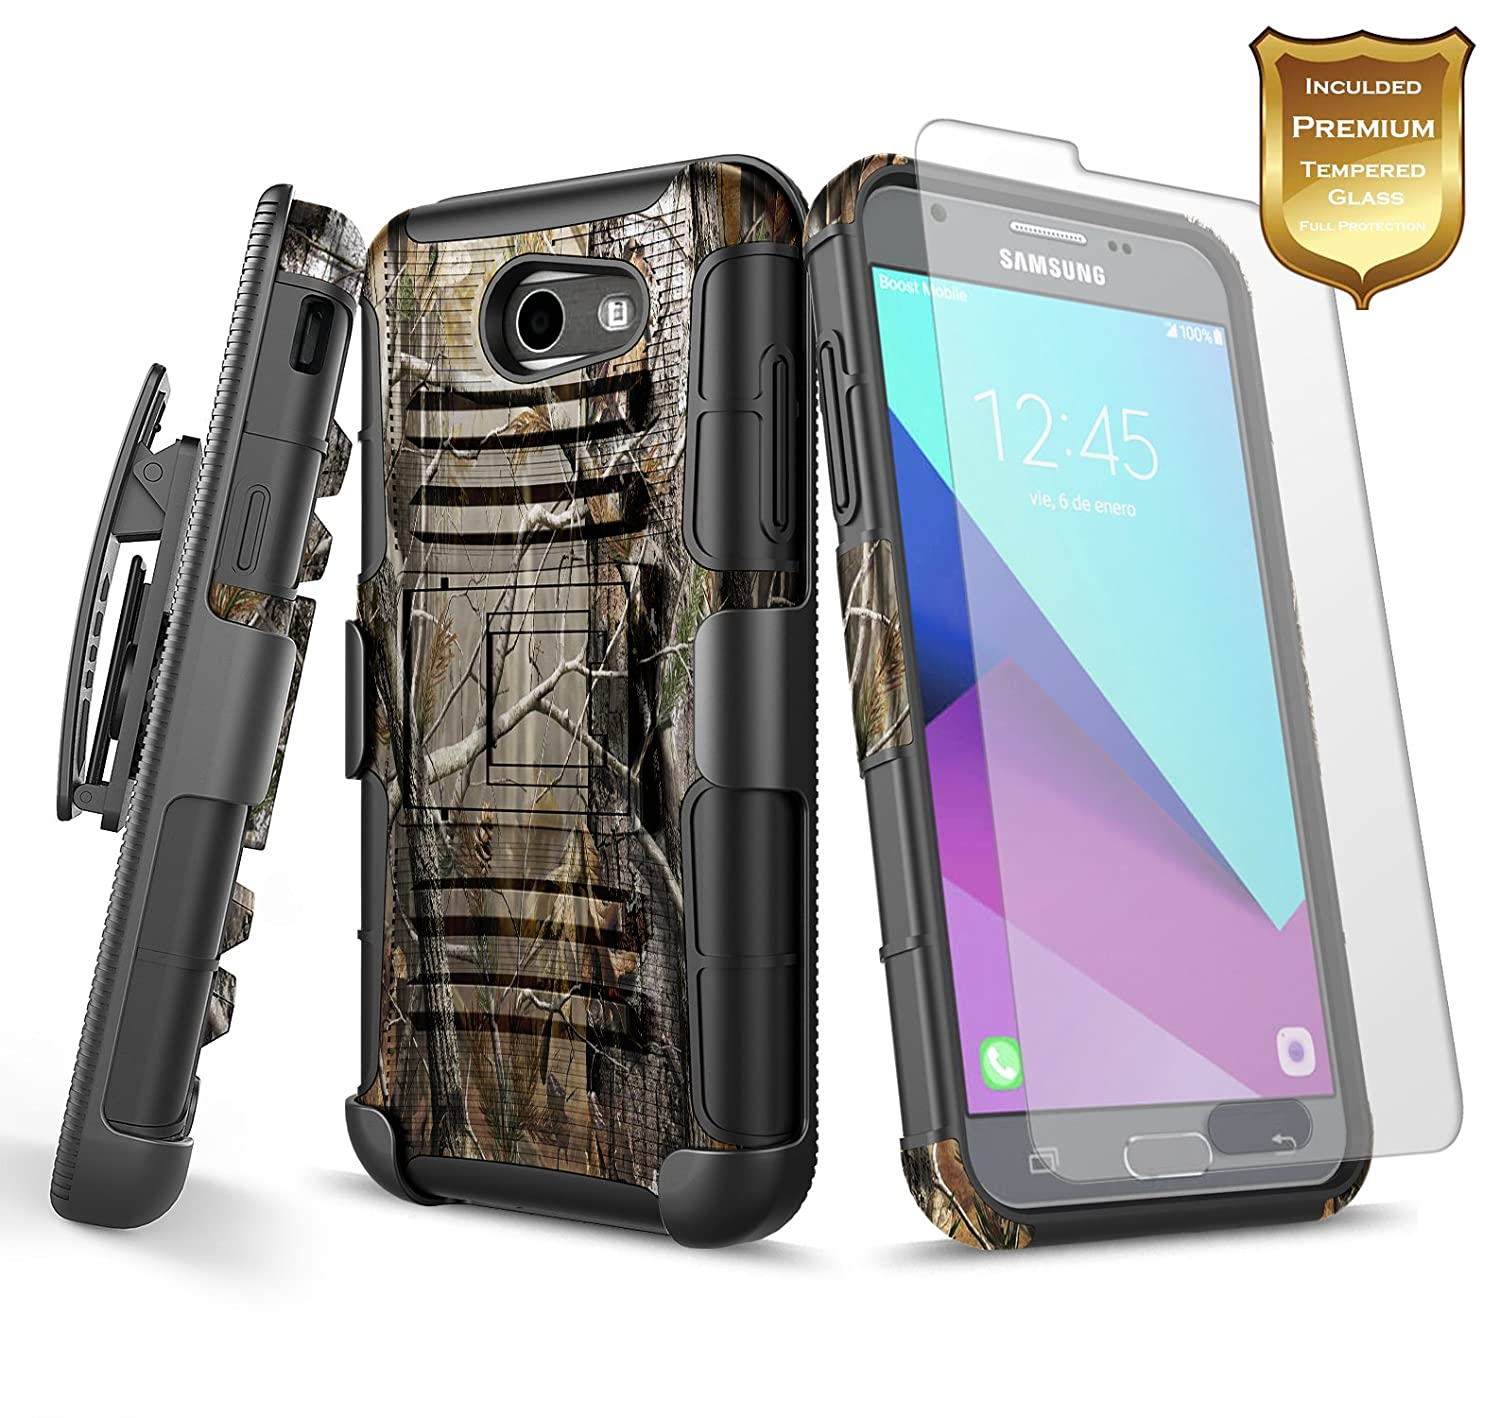 Galaxy J3 Prime Case Luna Pro Emerge Eclipse Tempered Glass Full Color Samsung Cover 2017 Mission W Screen Protector Nagebee Belt Clip Holster